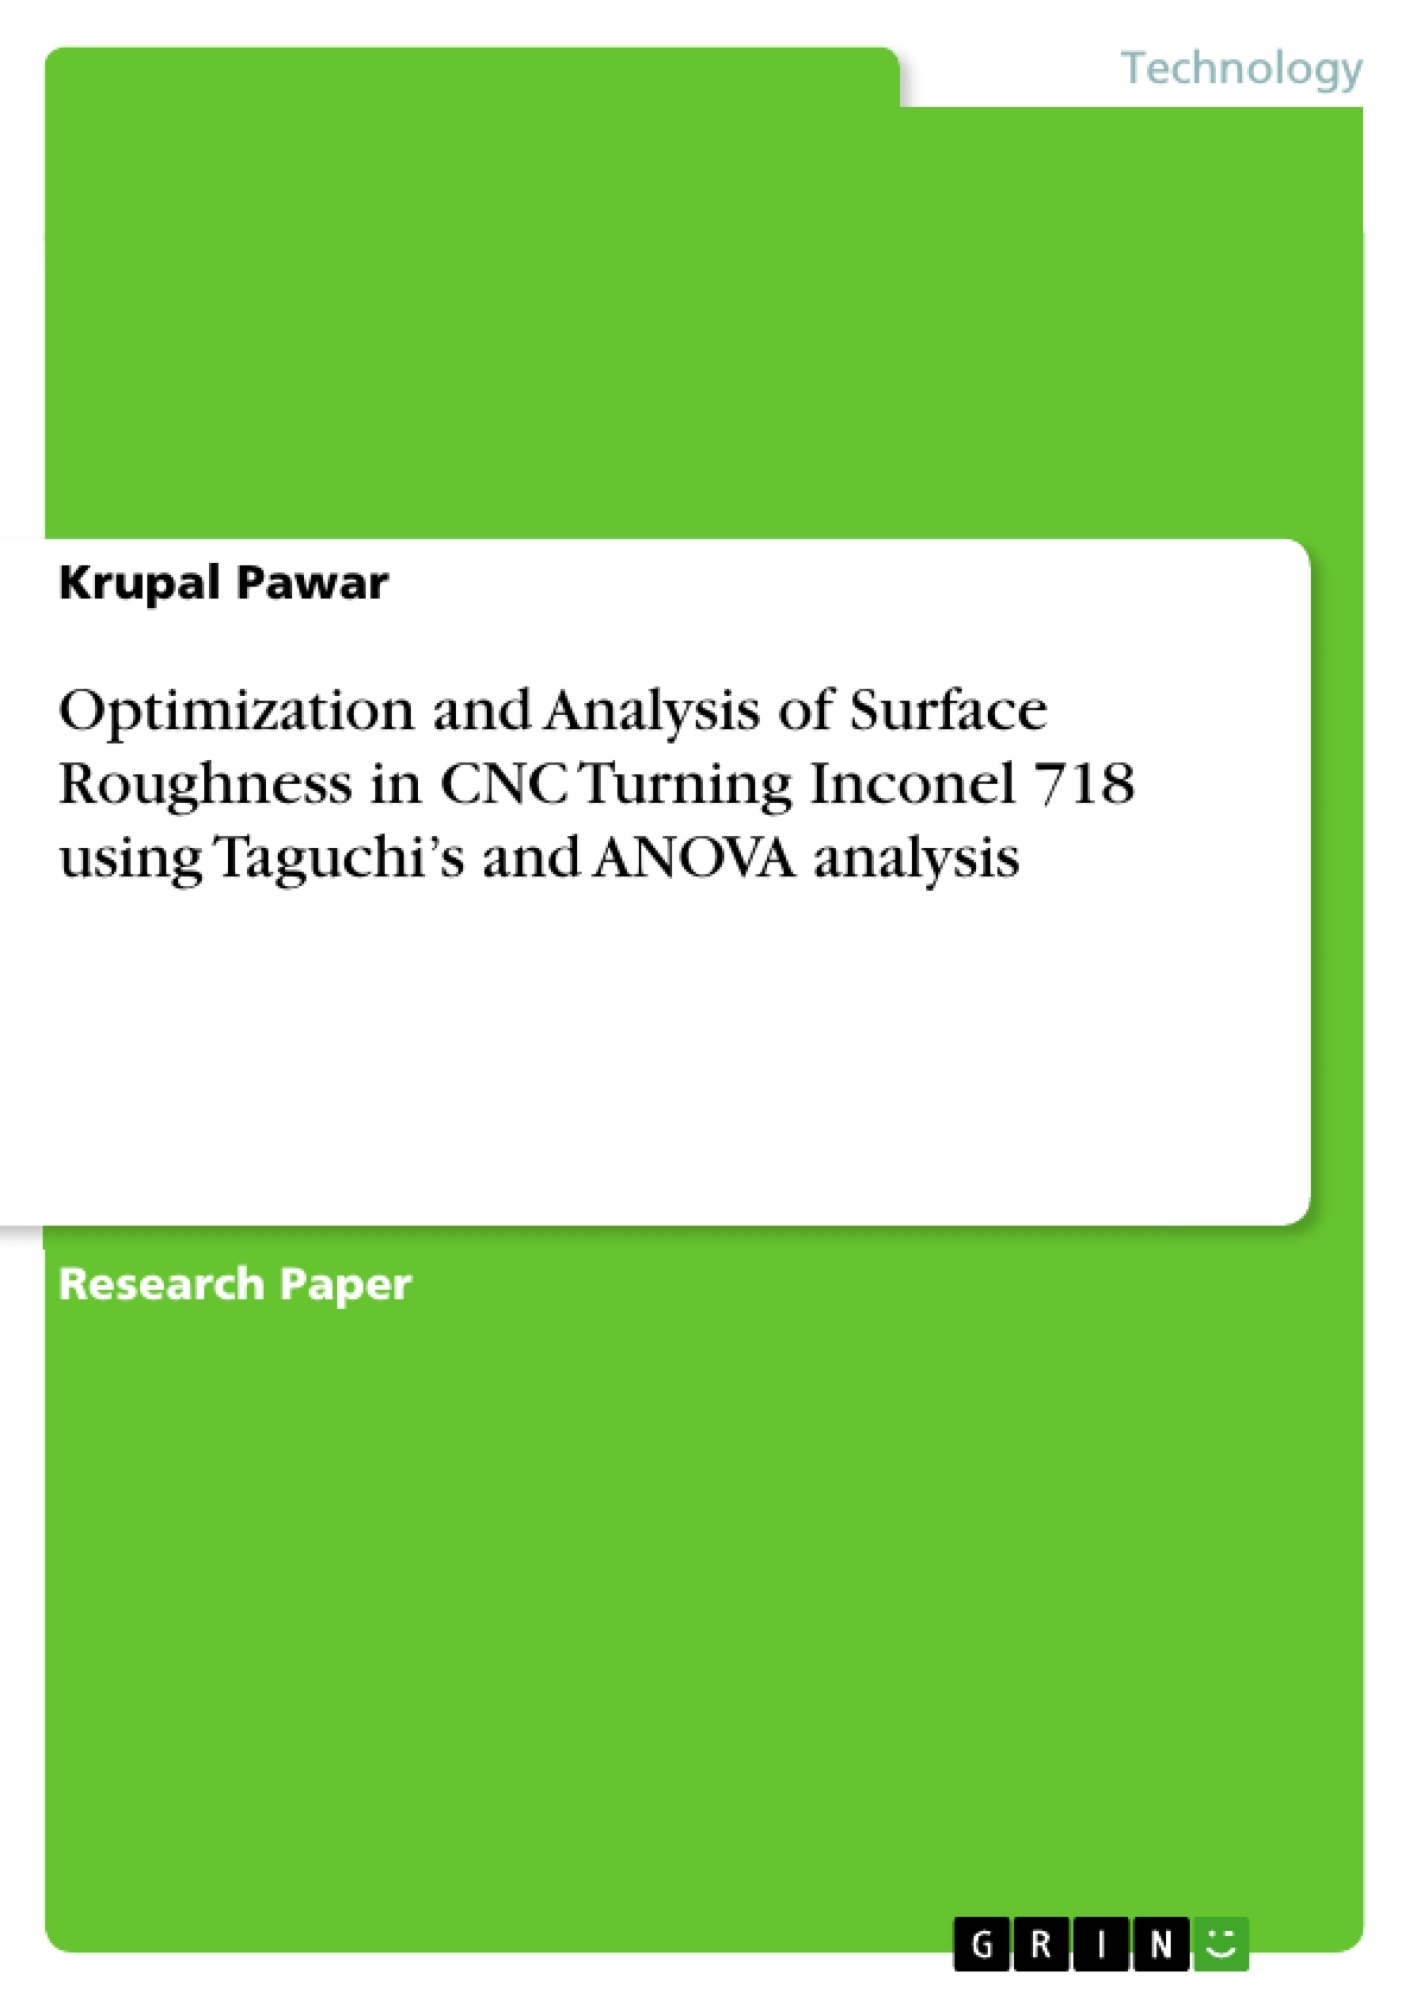 Title: Optimization and Analysis of Surface Roughness in CNC Turning Inconel 718 using Taguchi's and ANOVA analysis